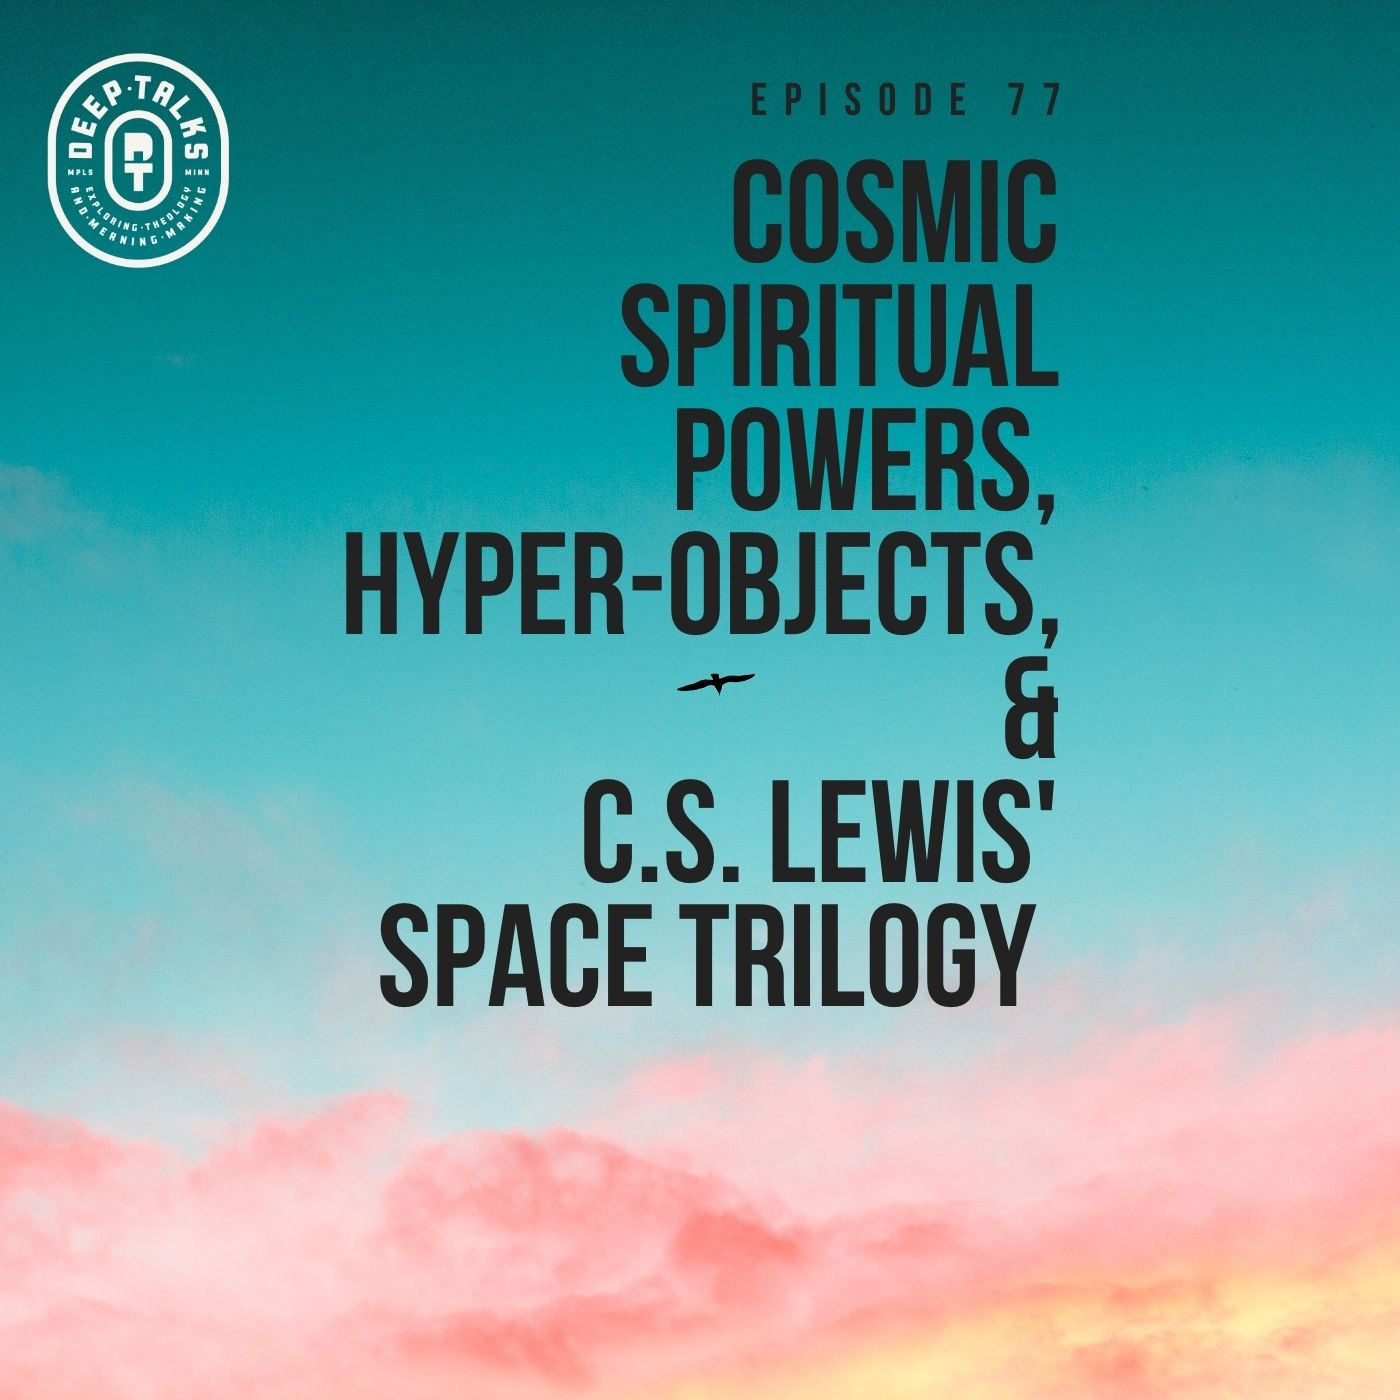 Ep 77: Cosmic Spiritual Powers, Hyper-Objects, and C.S. Lewis Space Trilogy